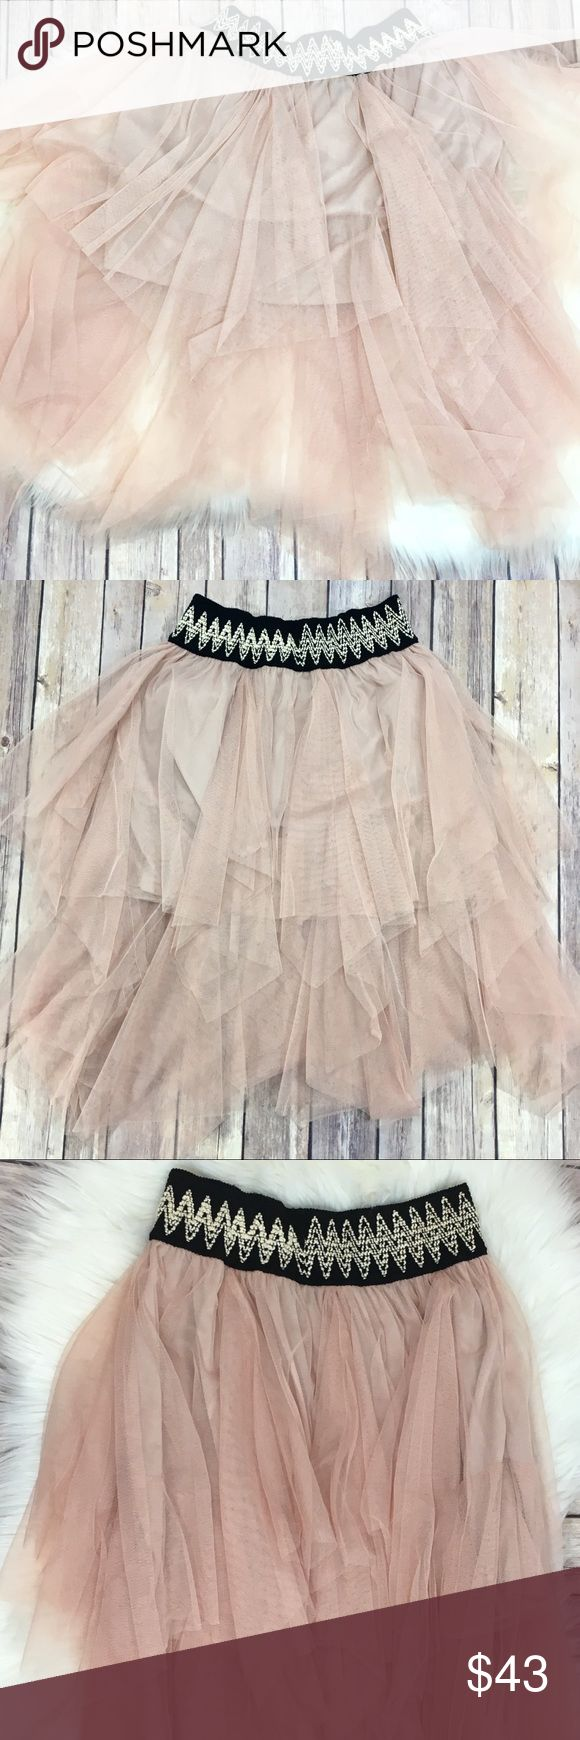 """Hommage Tulle Blush Pink Ballerina Skirt Sz Small Tulle SATC Blush Pink Ballerina Skirt Sz Small EUC  Carrie Bradshaw called & she wants her skirt back.  I'm so sad this skirt doesn't fit me! Layers of millennial pink tulle over a built in slip, and a knit elasticized waist band make this  skirt a Sex and the City dream skirt dupe.    Waistband measures approximately 10.75"""" lying flat & unstretched.  It can stretch to approximately 14"""". Slip is approximately 14"""" long, and there are various…"""